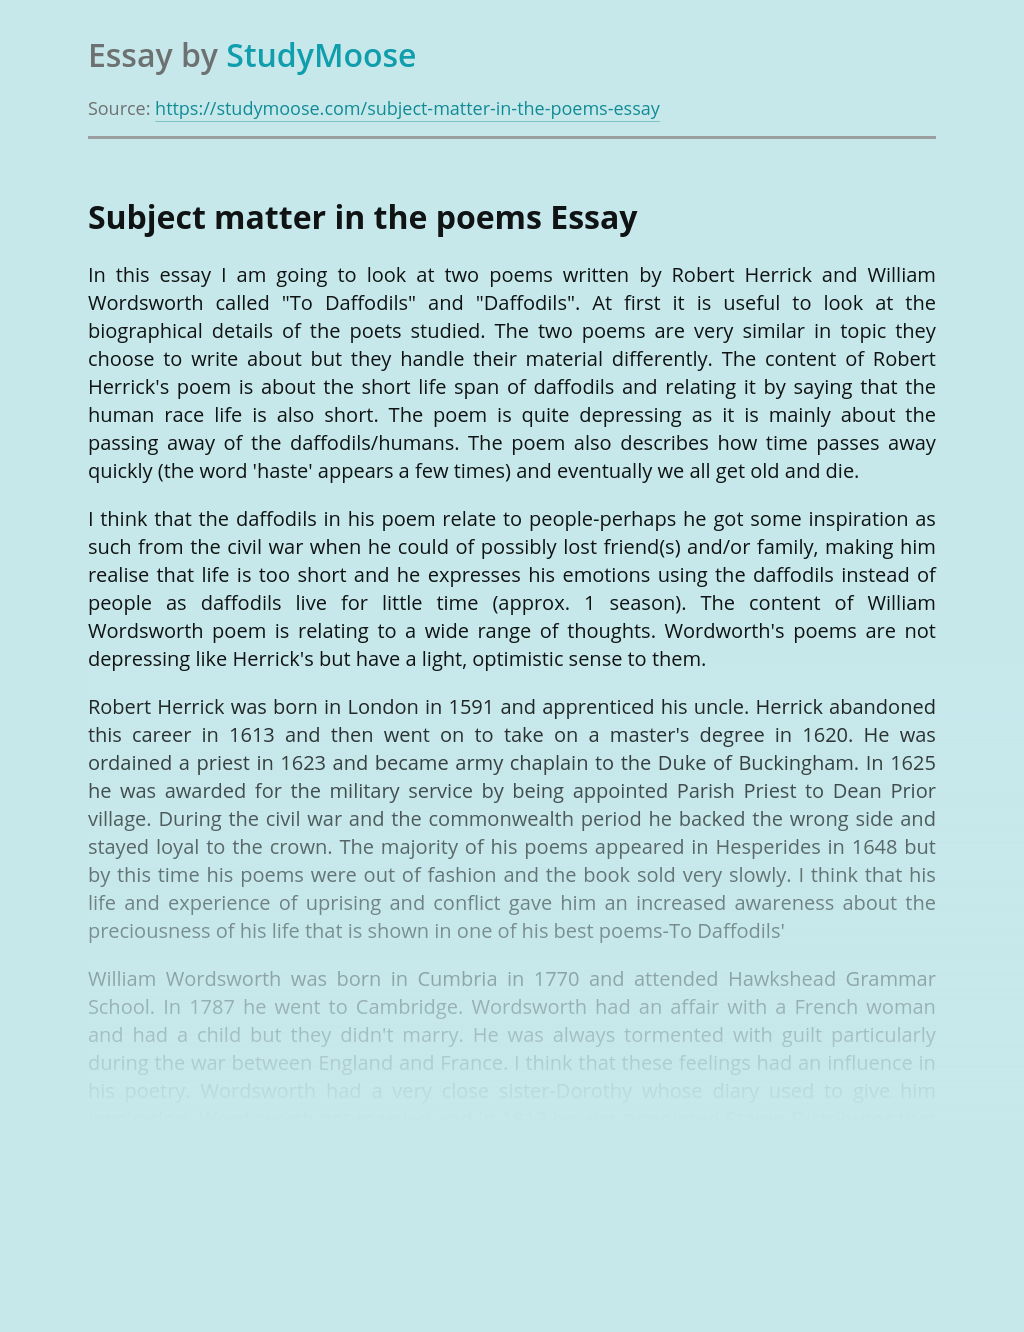 Subject matter in the poems